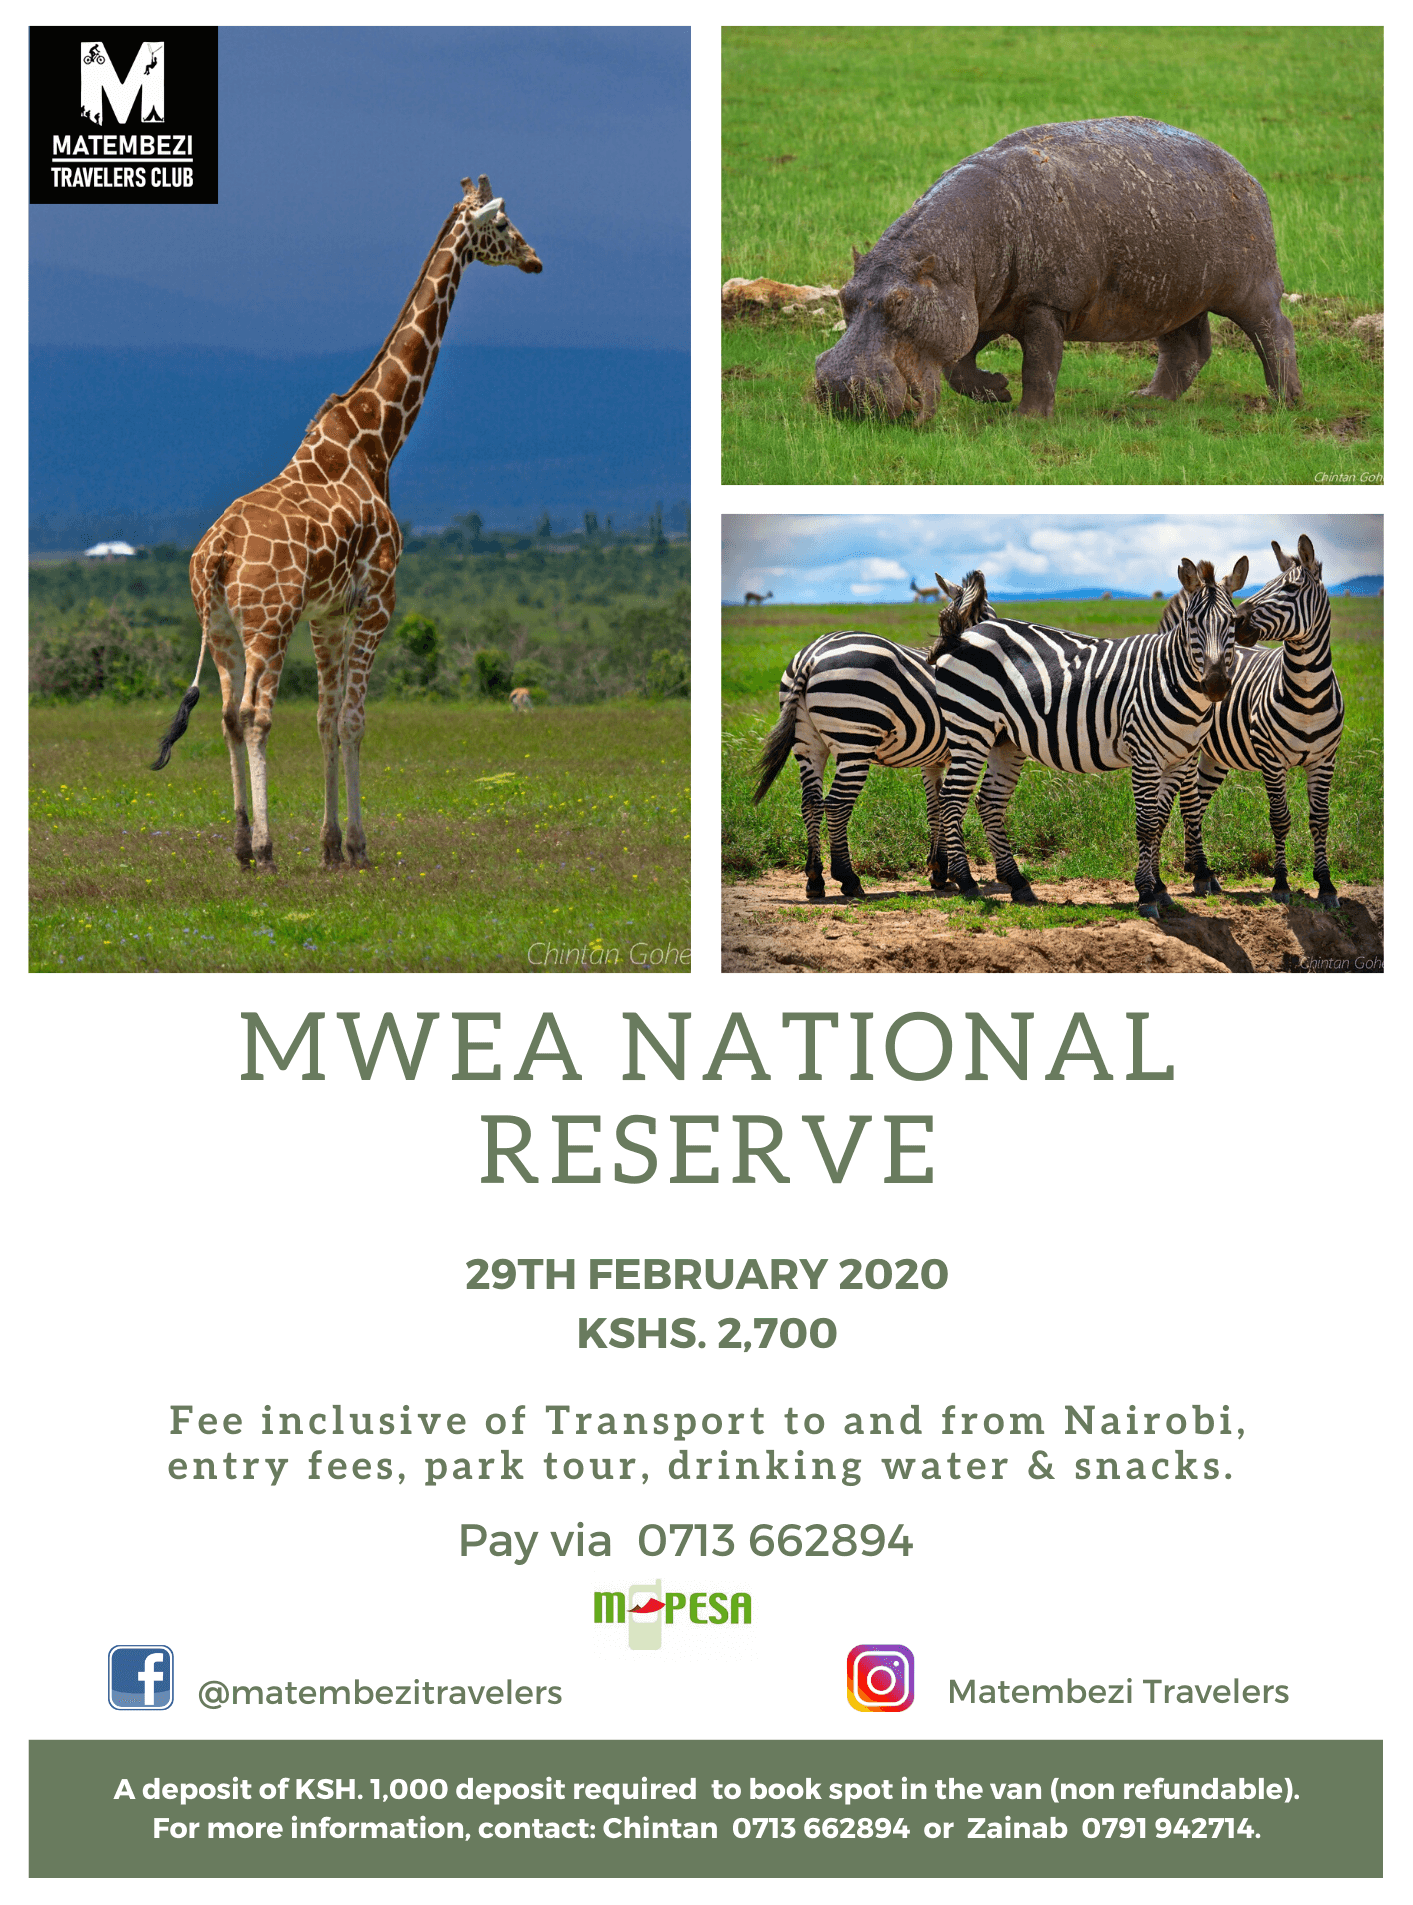 Mwea National Reserve Day safari